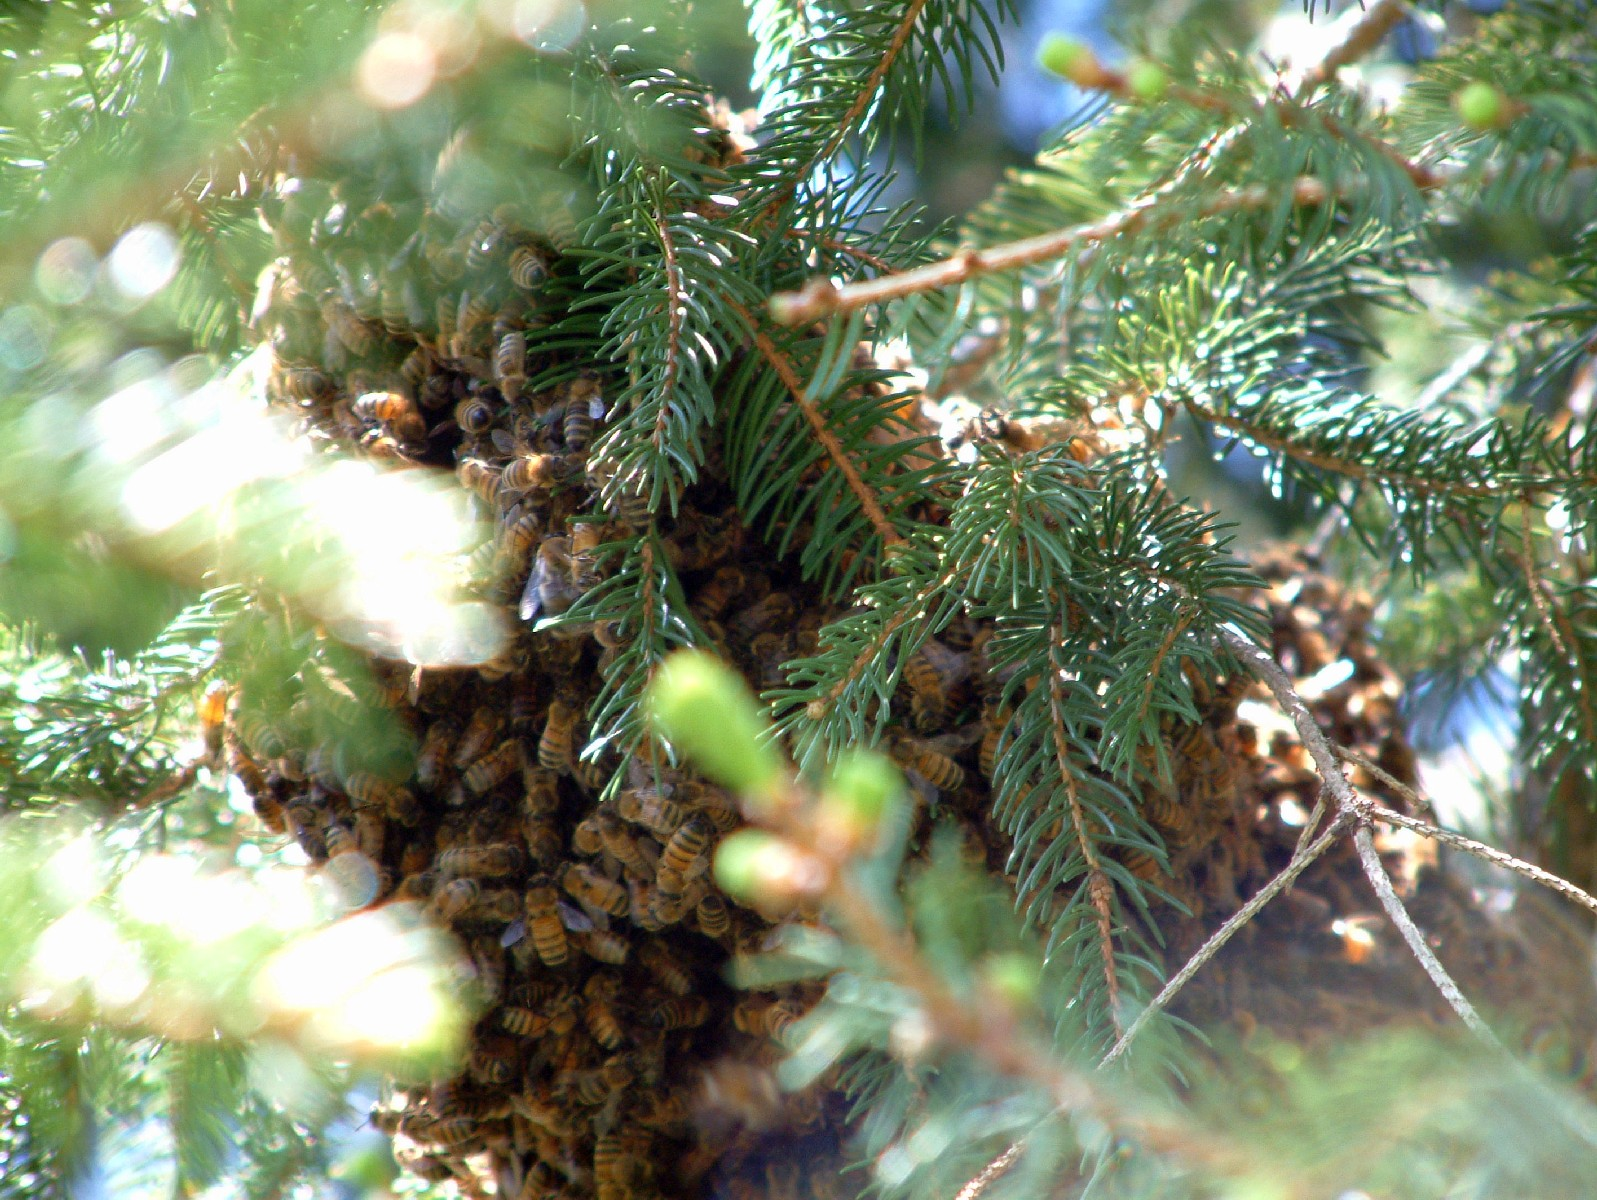 Swarm in Pines 2